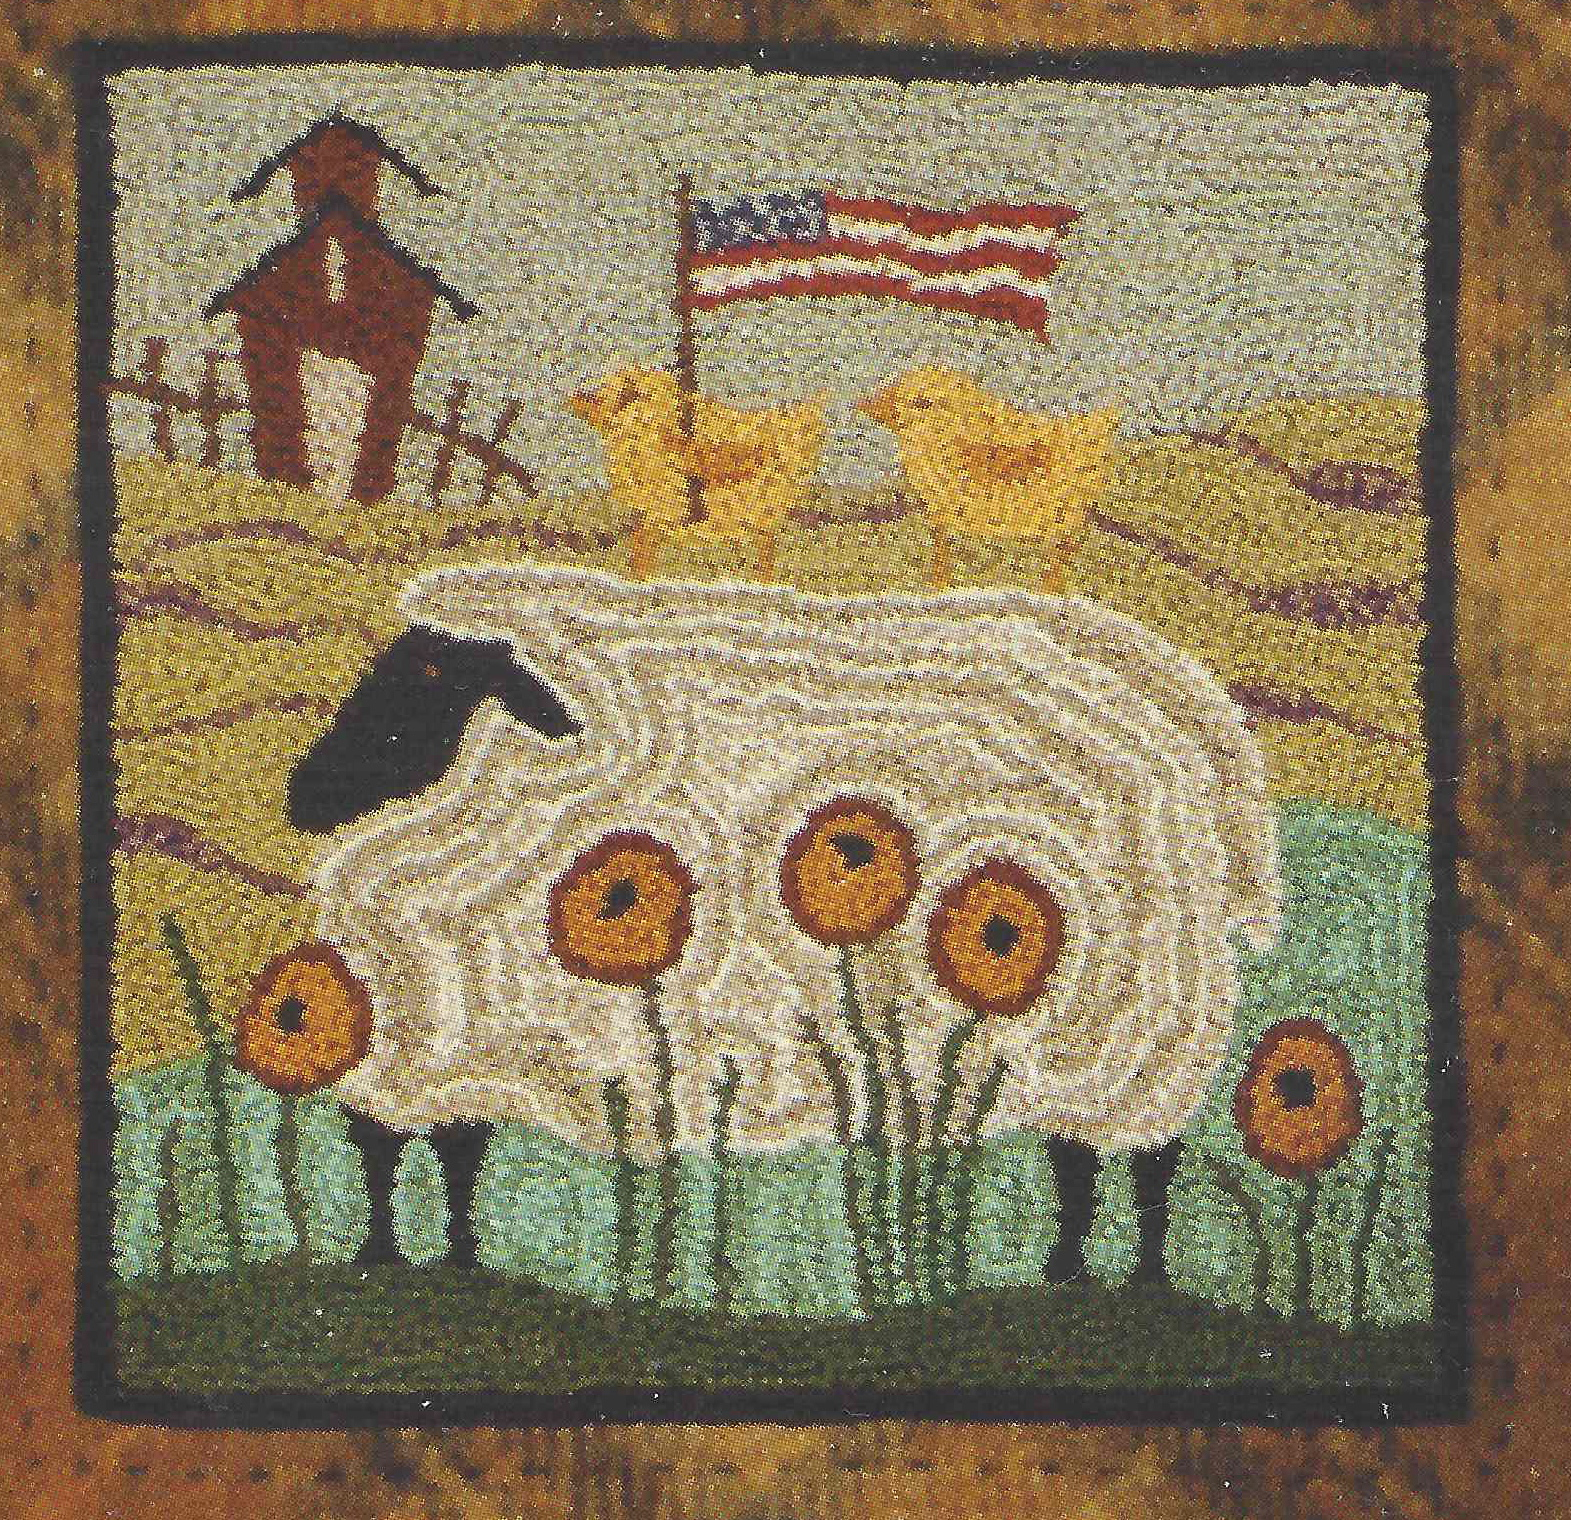 Two Chicks on the Lamb Pattern